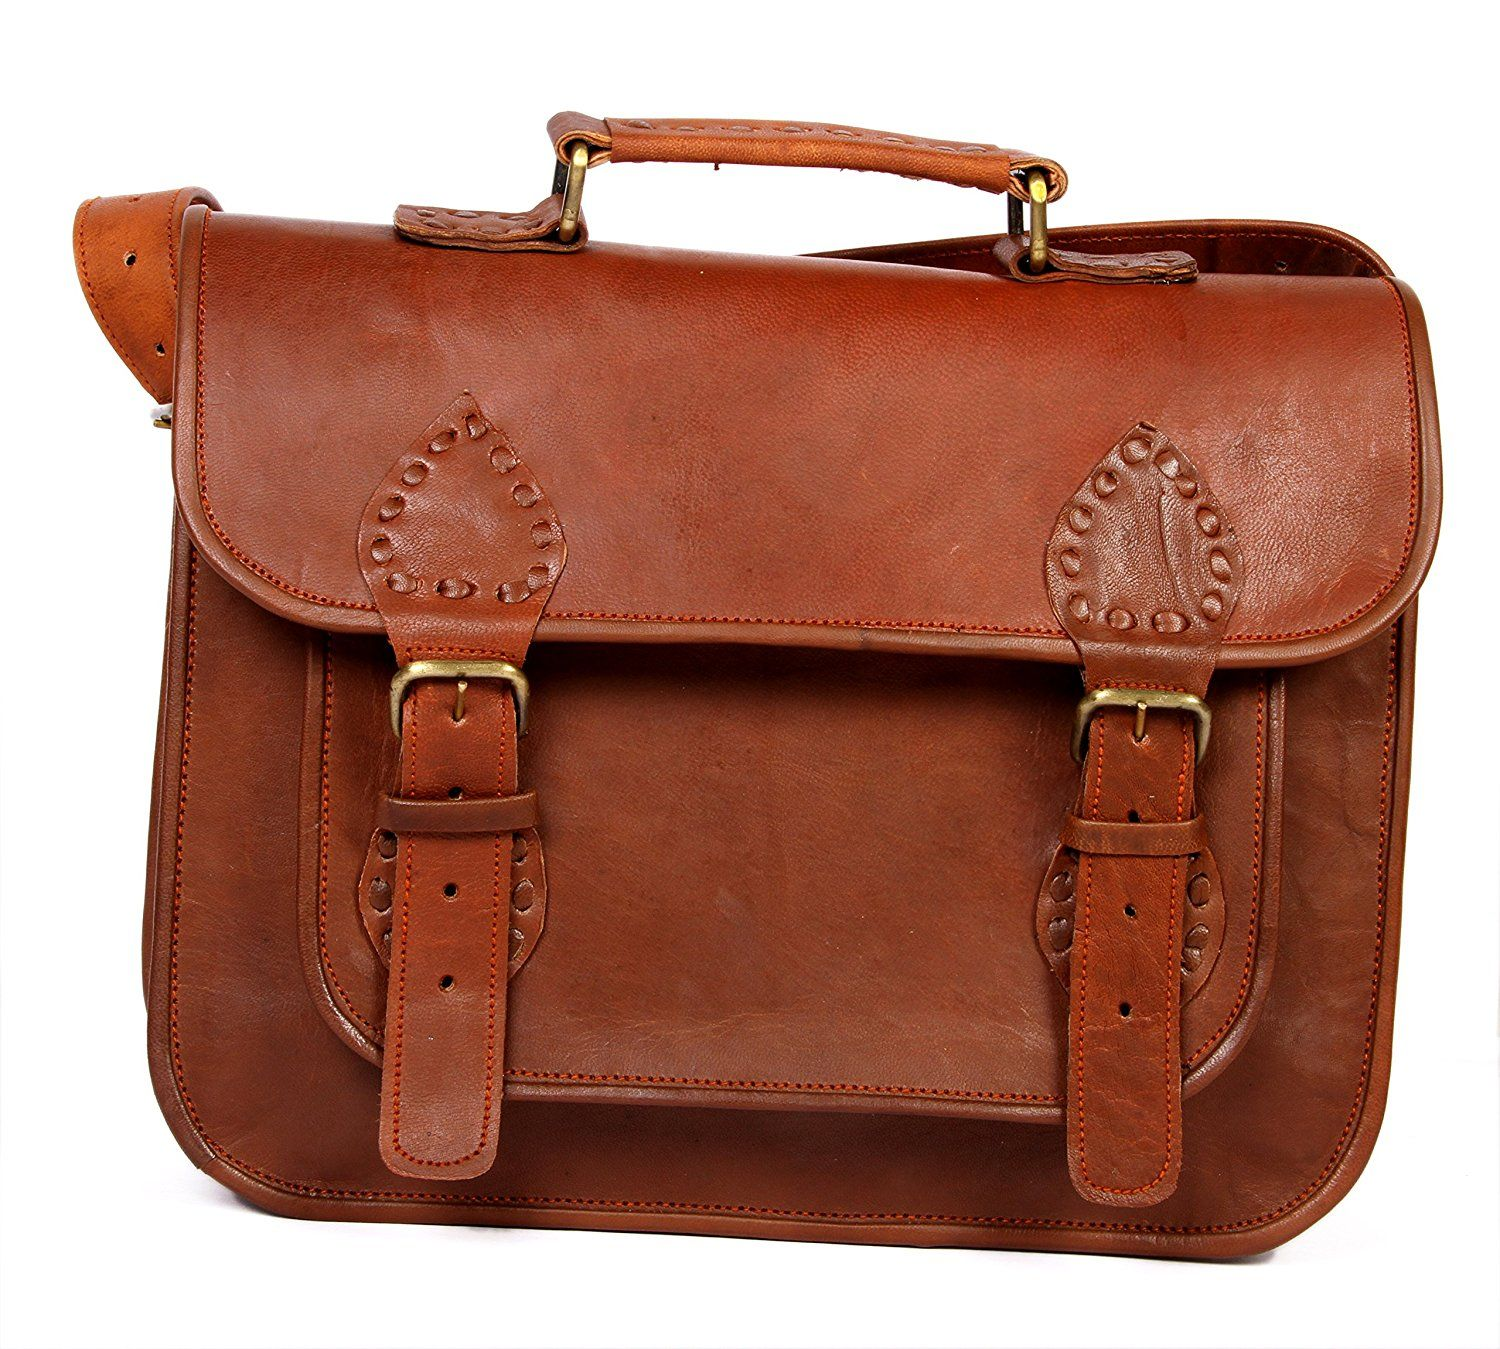 Vintage Crafts Leather Messenger Briefcase Leather Satchel Laptop Bag for  Men and Women Leather Bag     See this great image   Christmas Luggage and  Travel ... 5158ef2b99fce